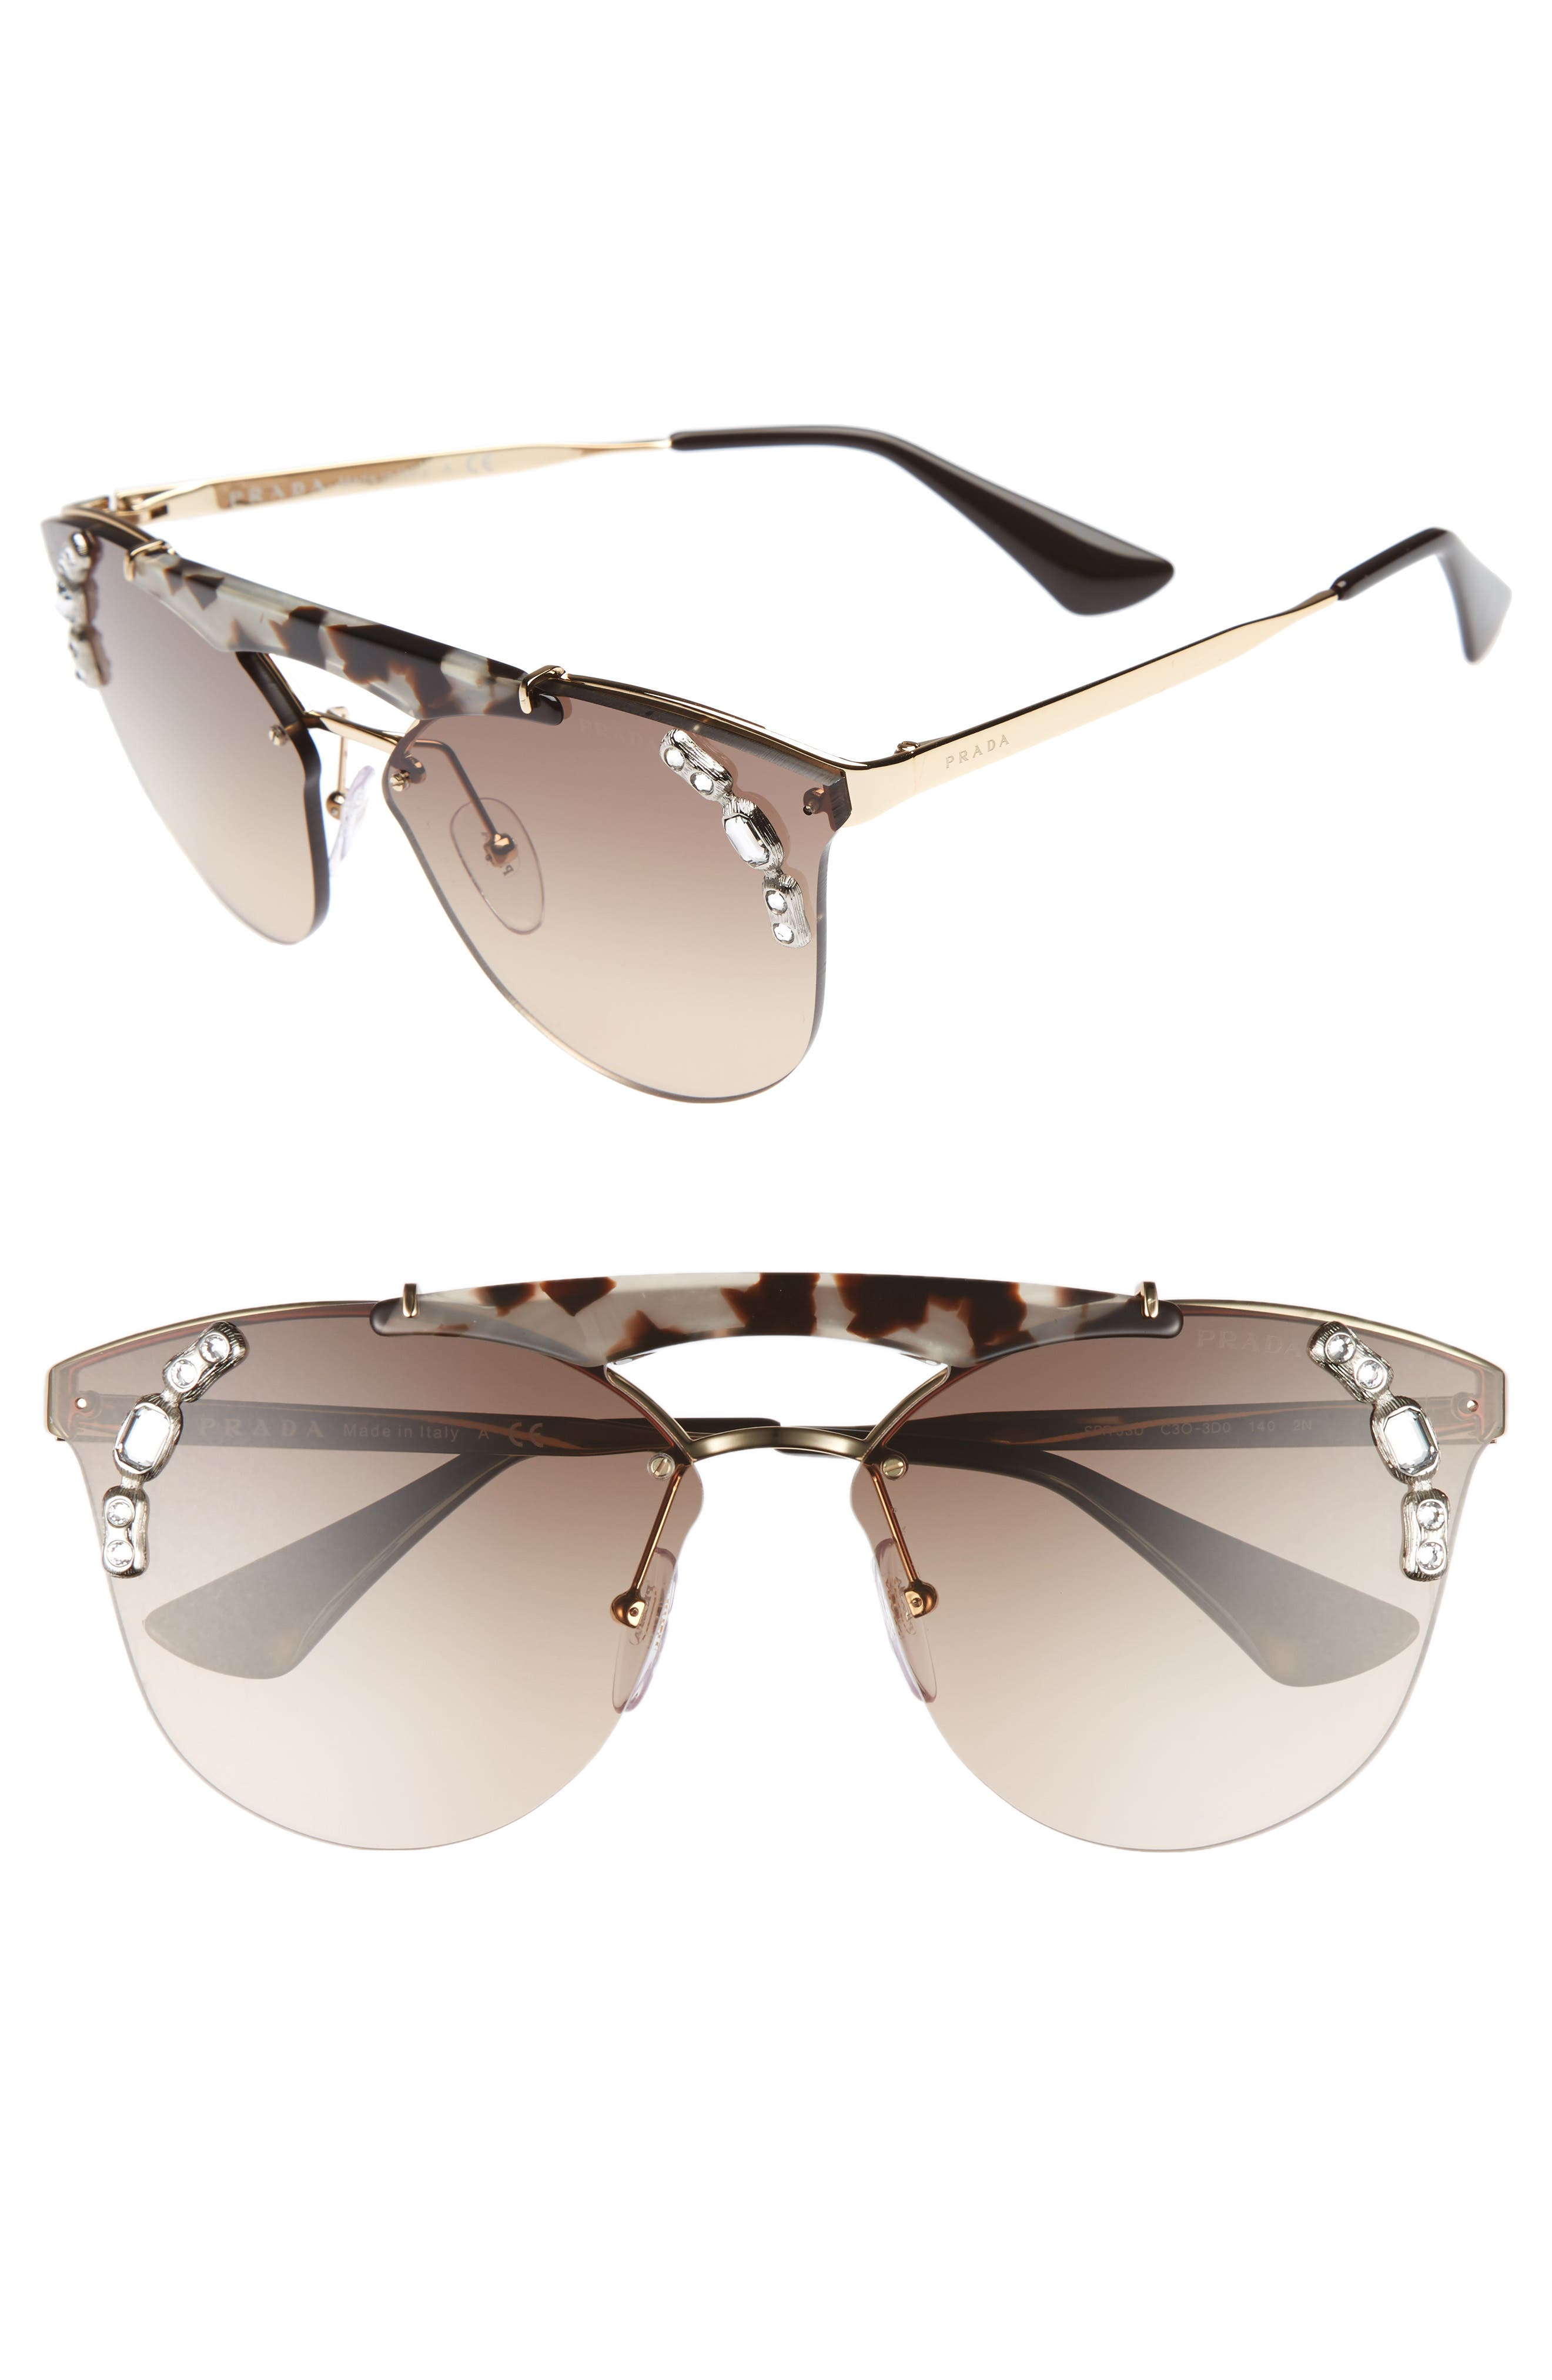 53mm Embellished Rimless Sunglasses,                             Main thumbnail 1, color,